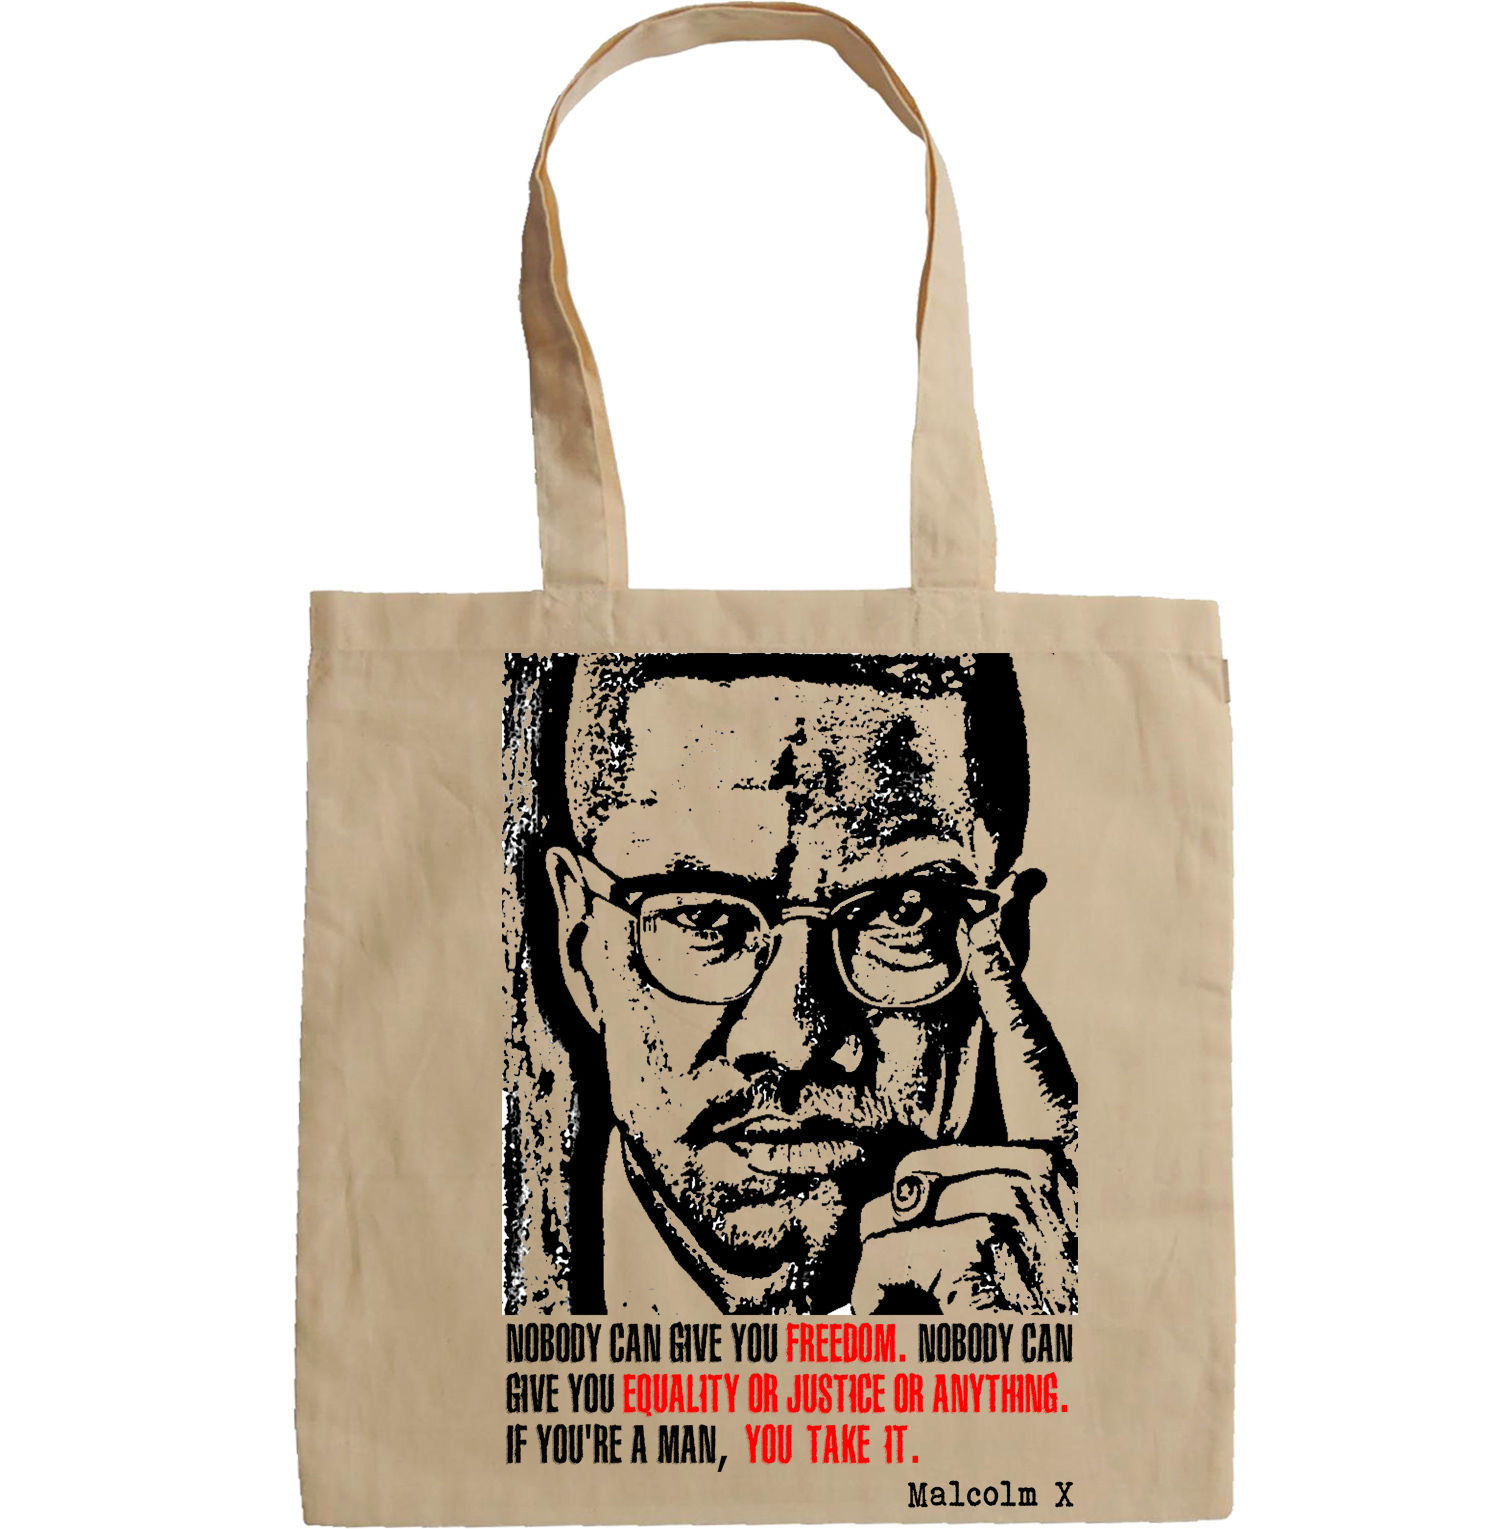 MALCOLM X QUOTE - NEW AMAZING GRAPHIC HAND BAG/TOTE BAG